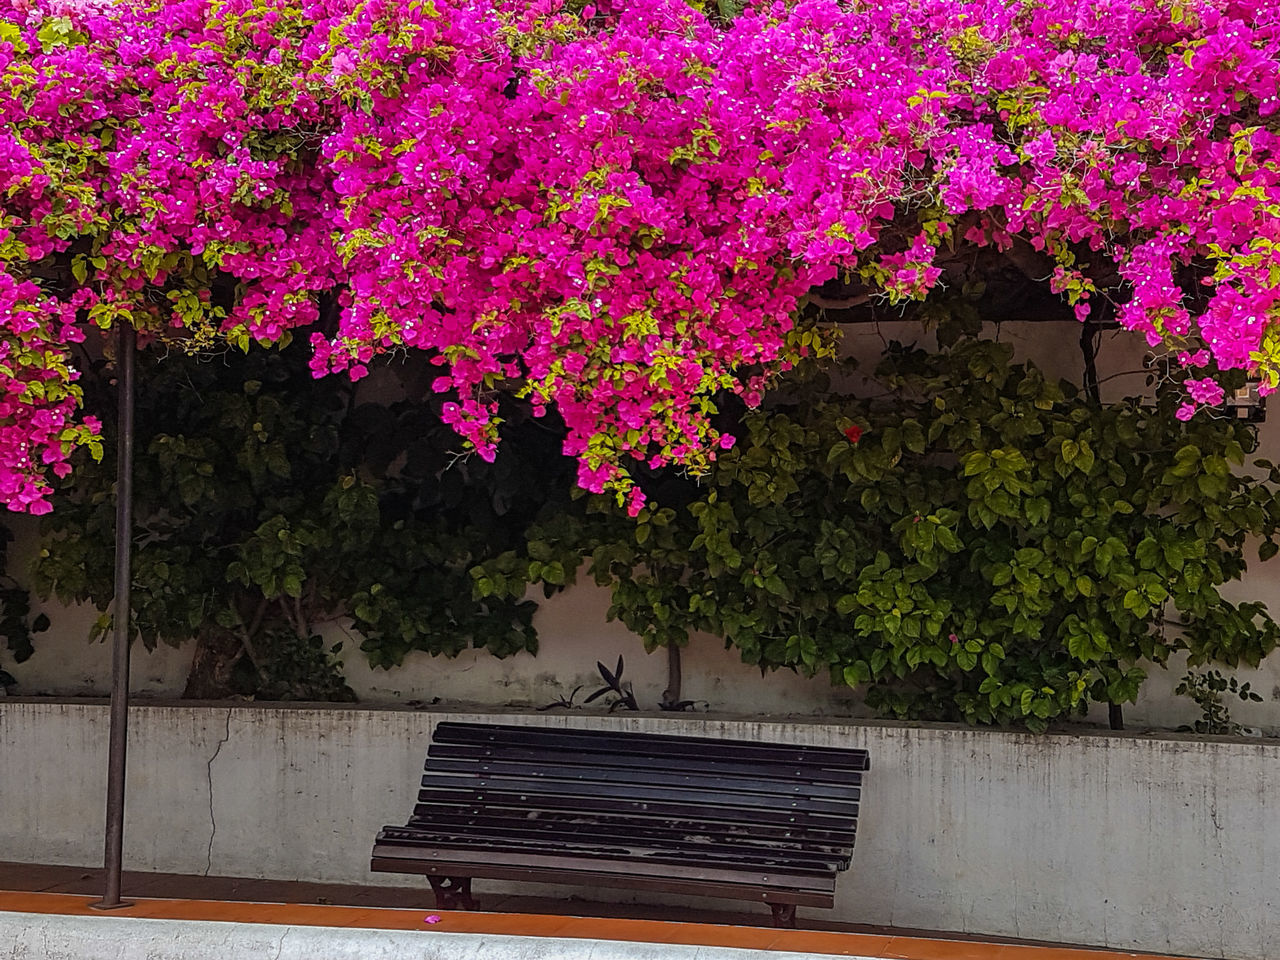 built structure, architecture, growth, flower, no people, building exterior, day, plant, pink color, outdoors, nature, tree, beauty in nature, freshness